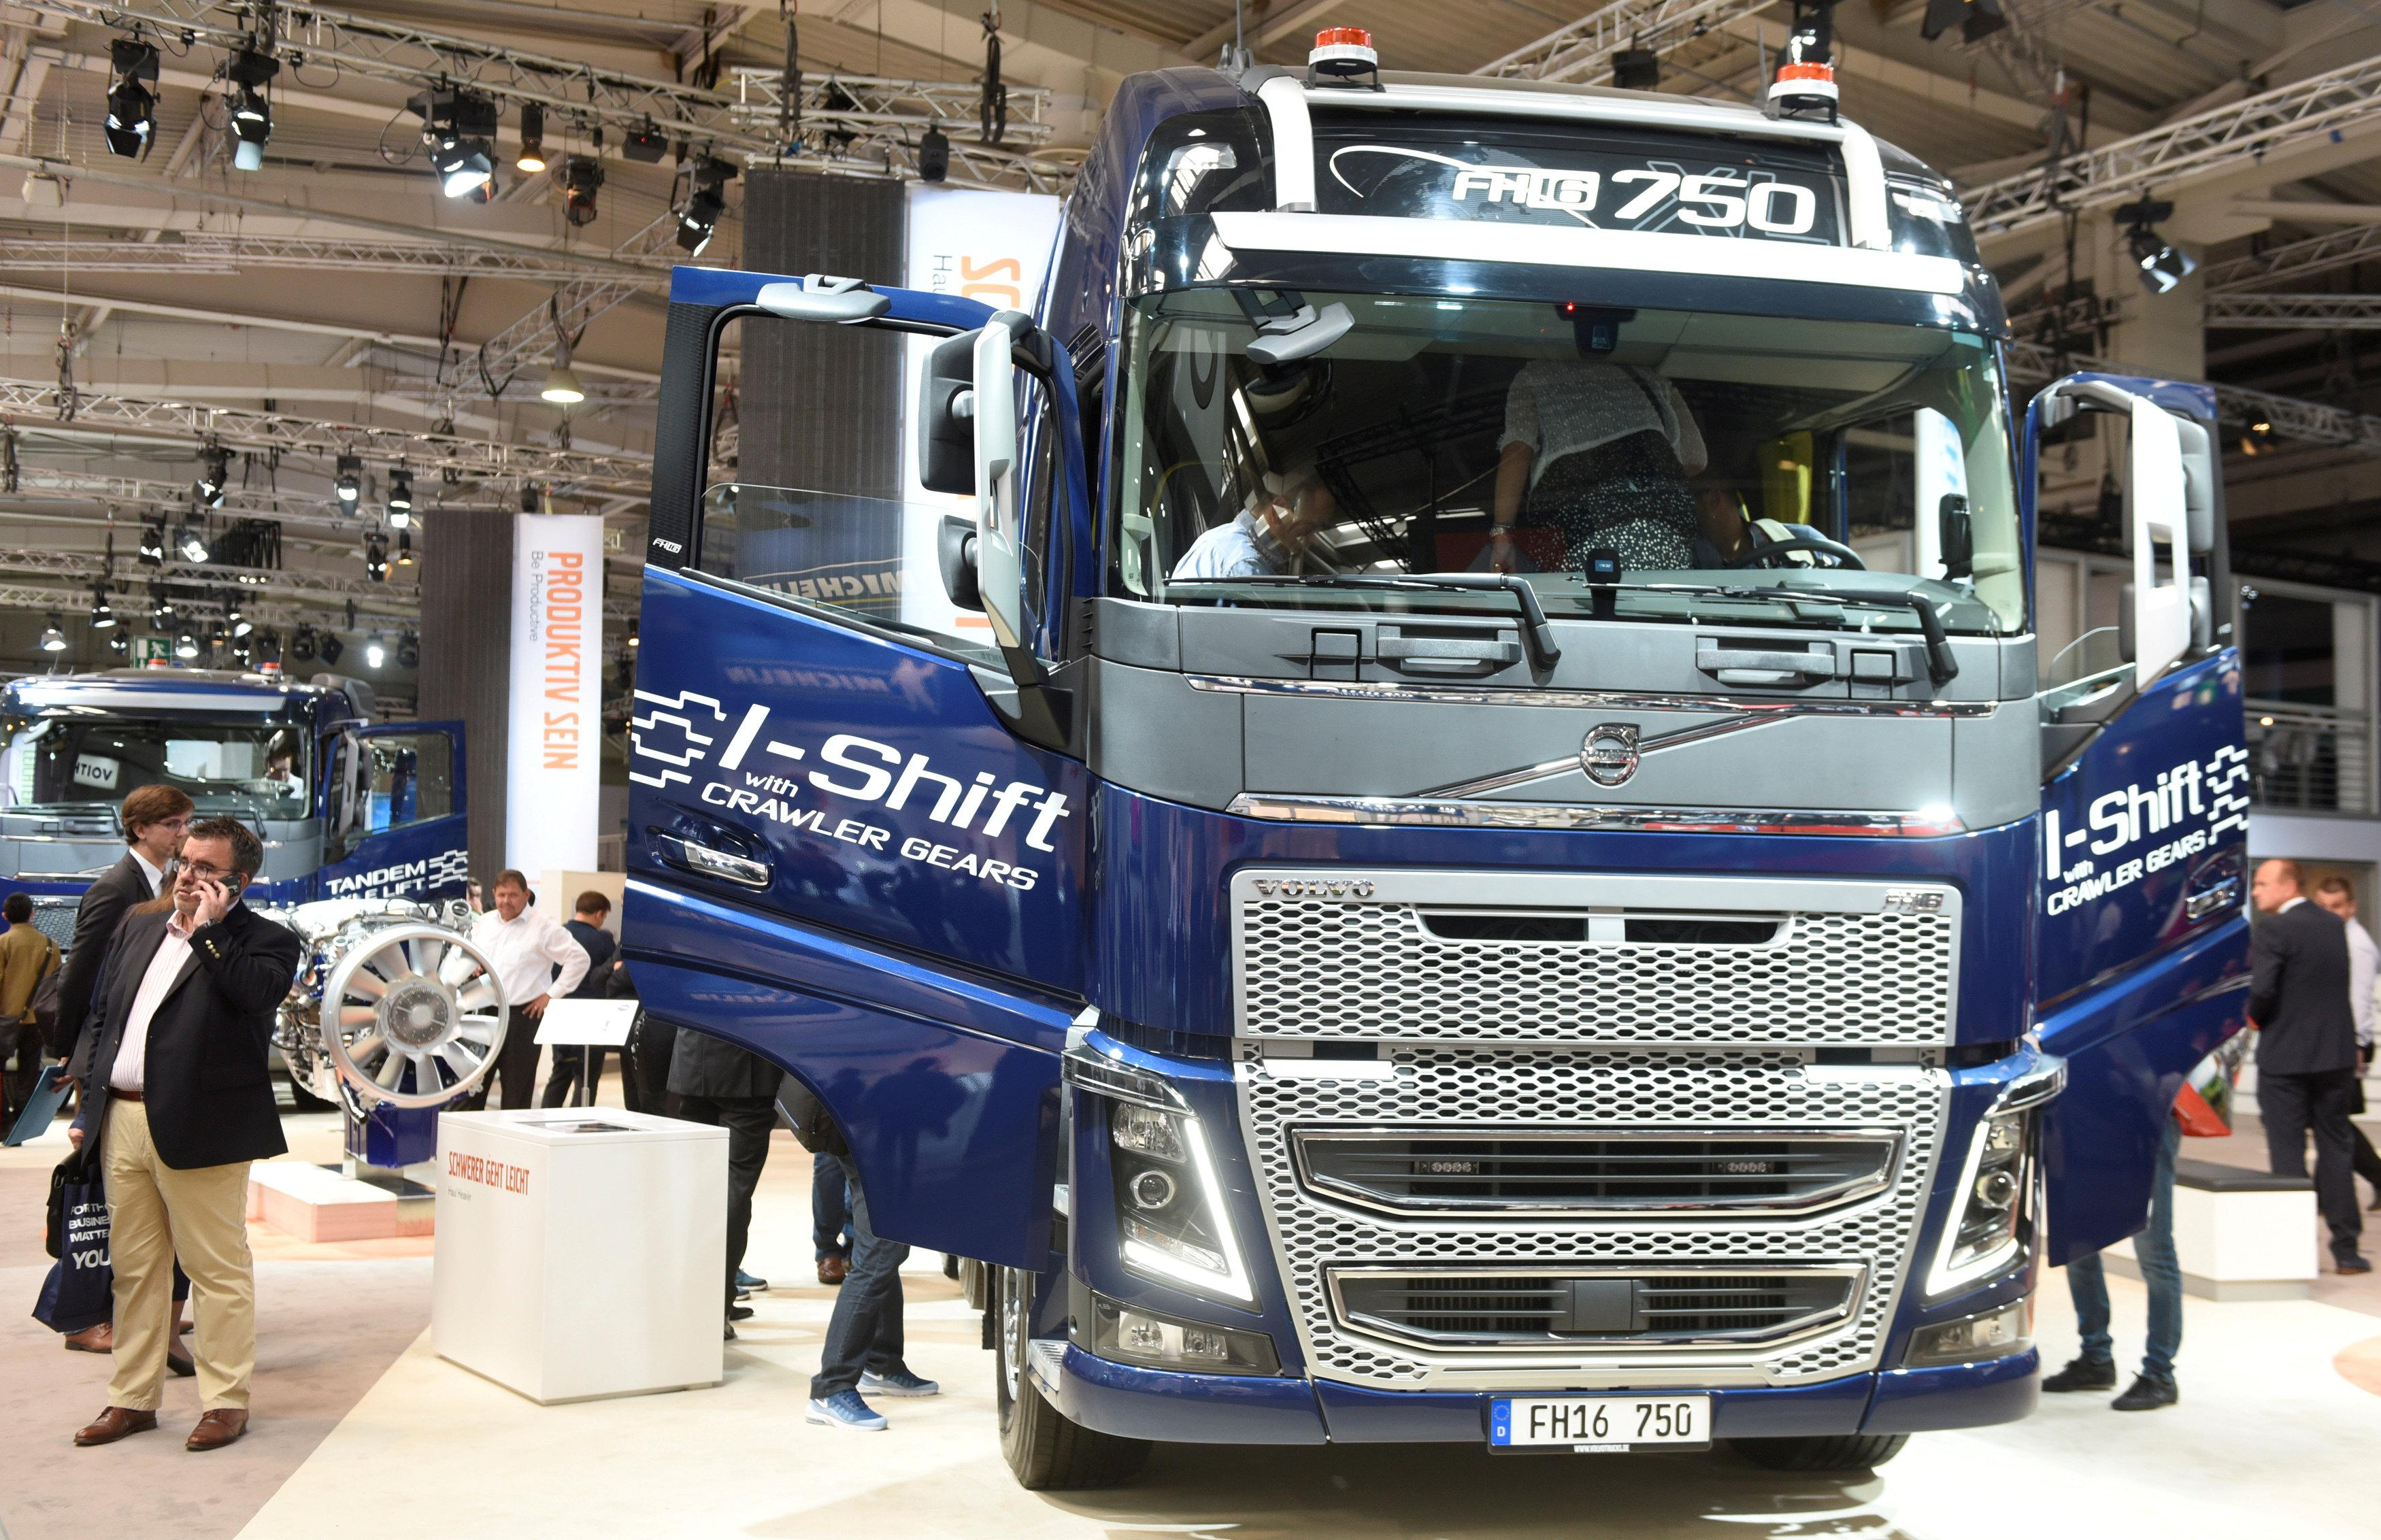 065a7bd55 China's Geely turns to Volvo trucks in latest Swedish venture - Reuters